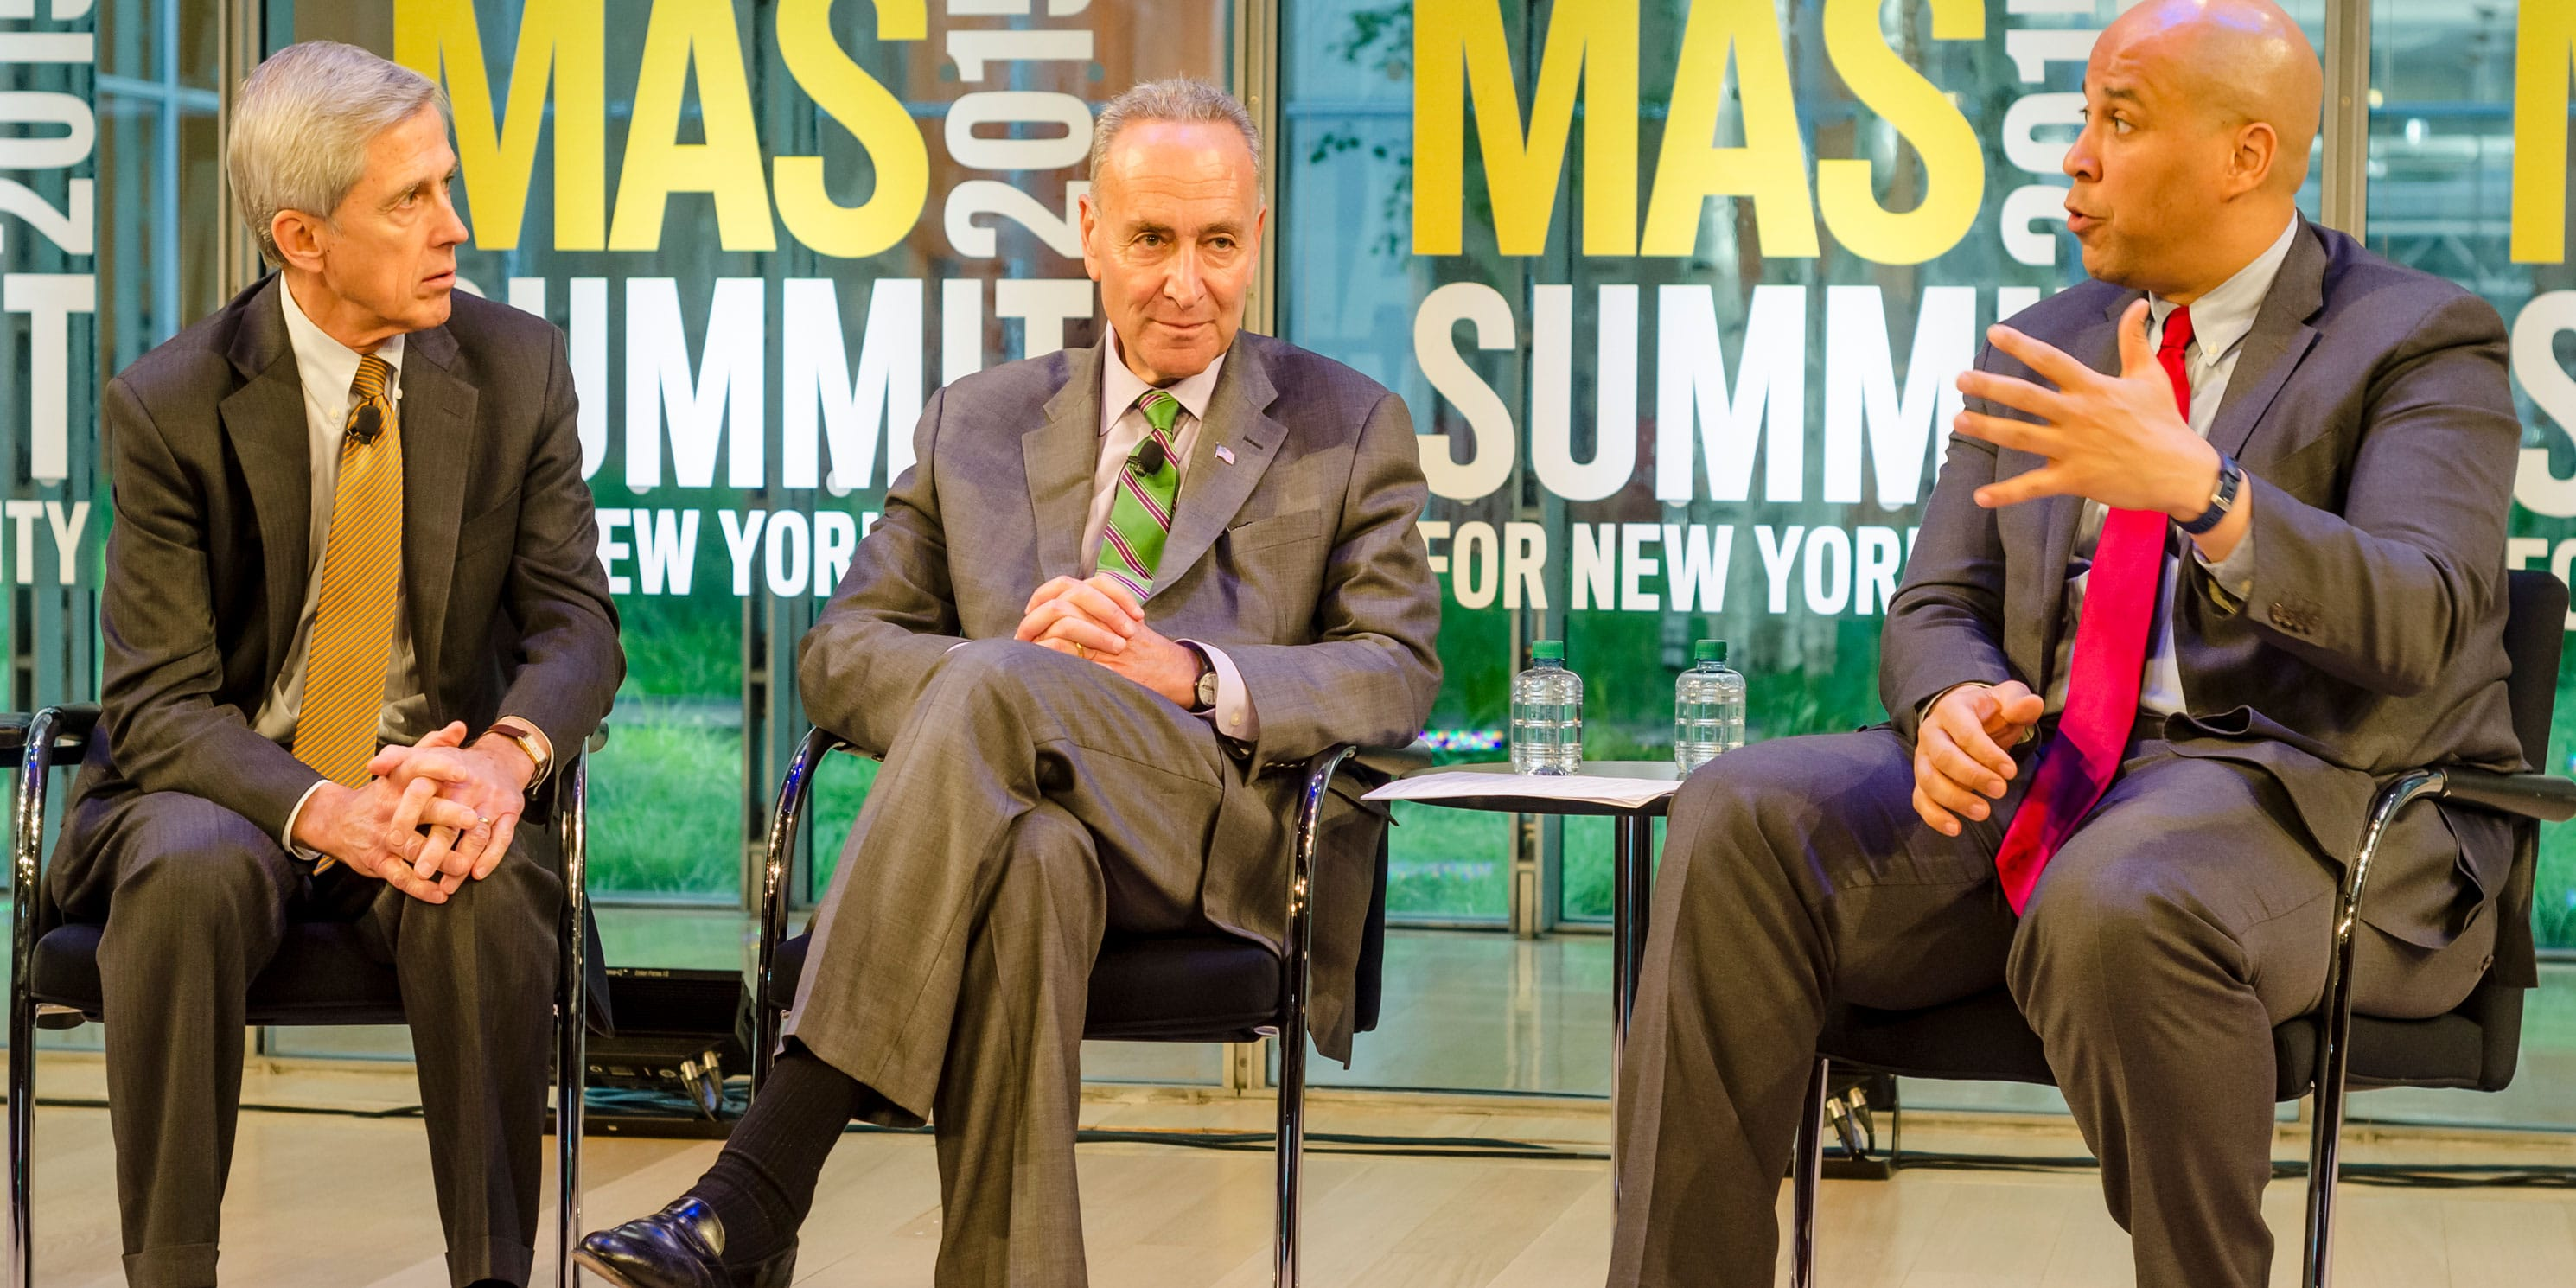 Chuck Schumer and Cory Booker on stage at the Summit